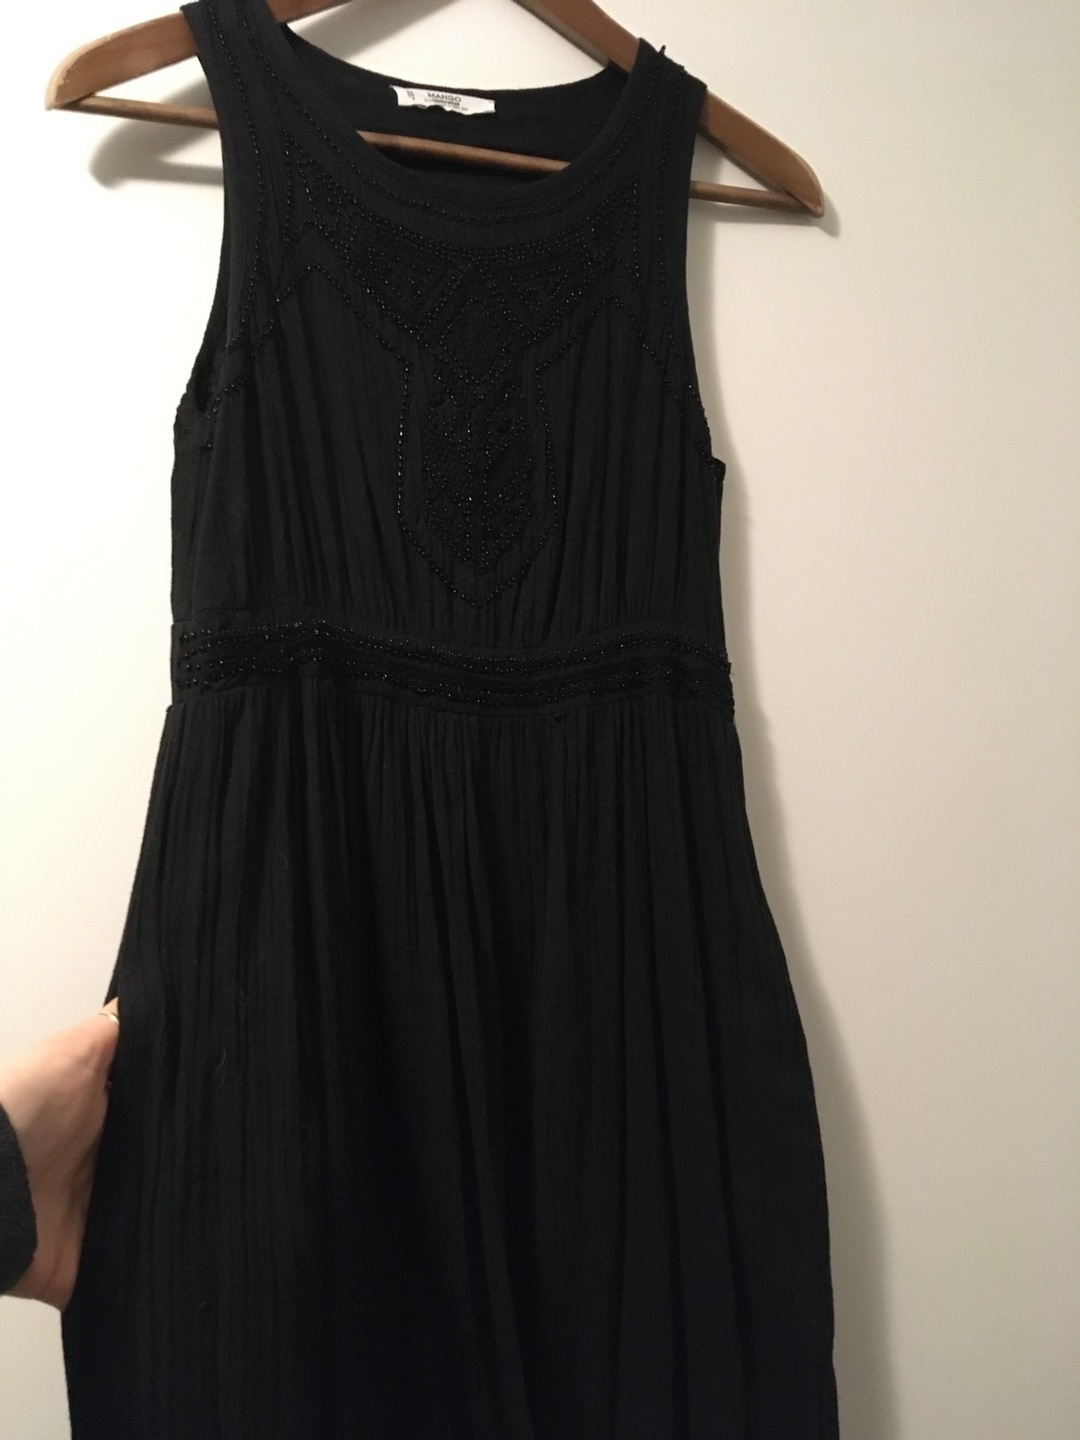 Women's dresses - MANGO photo 3